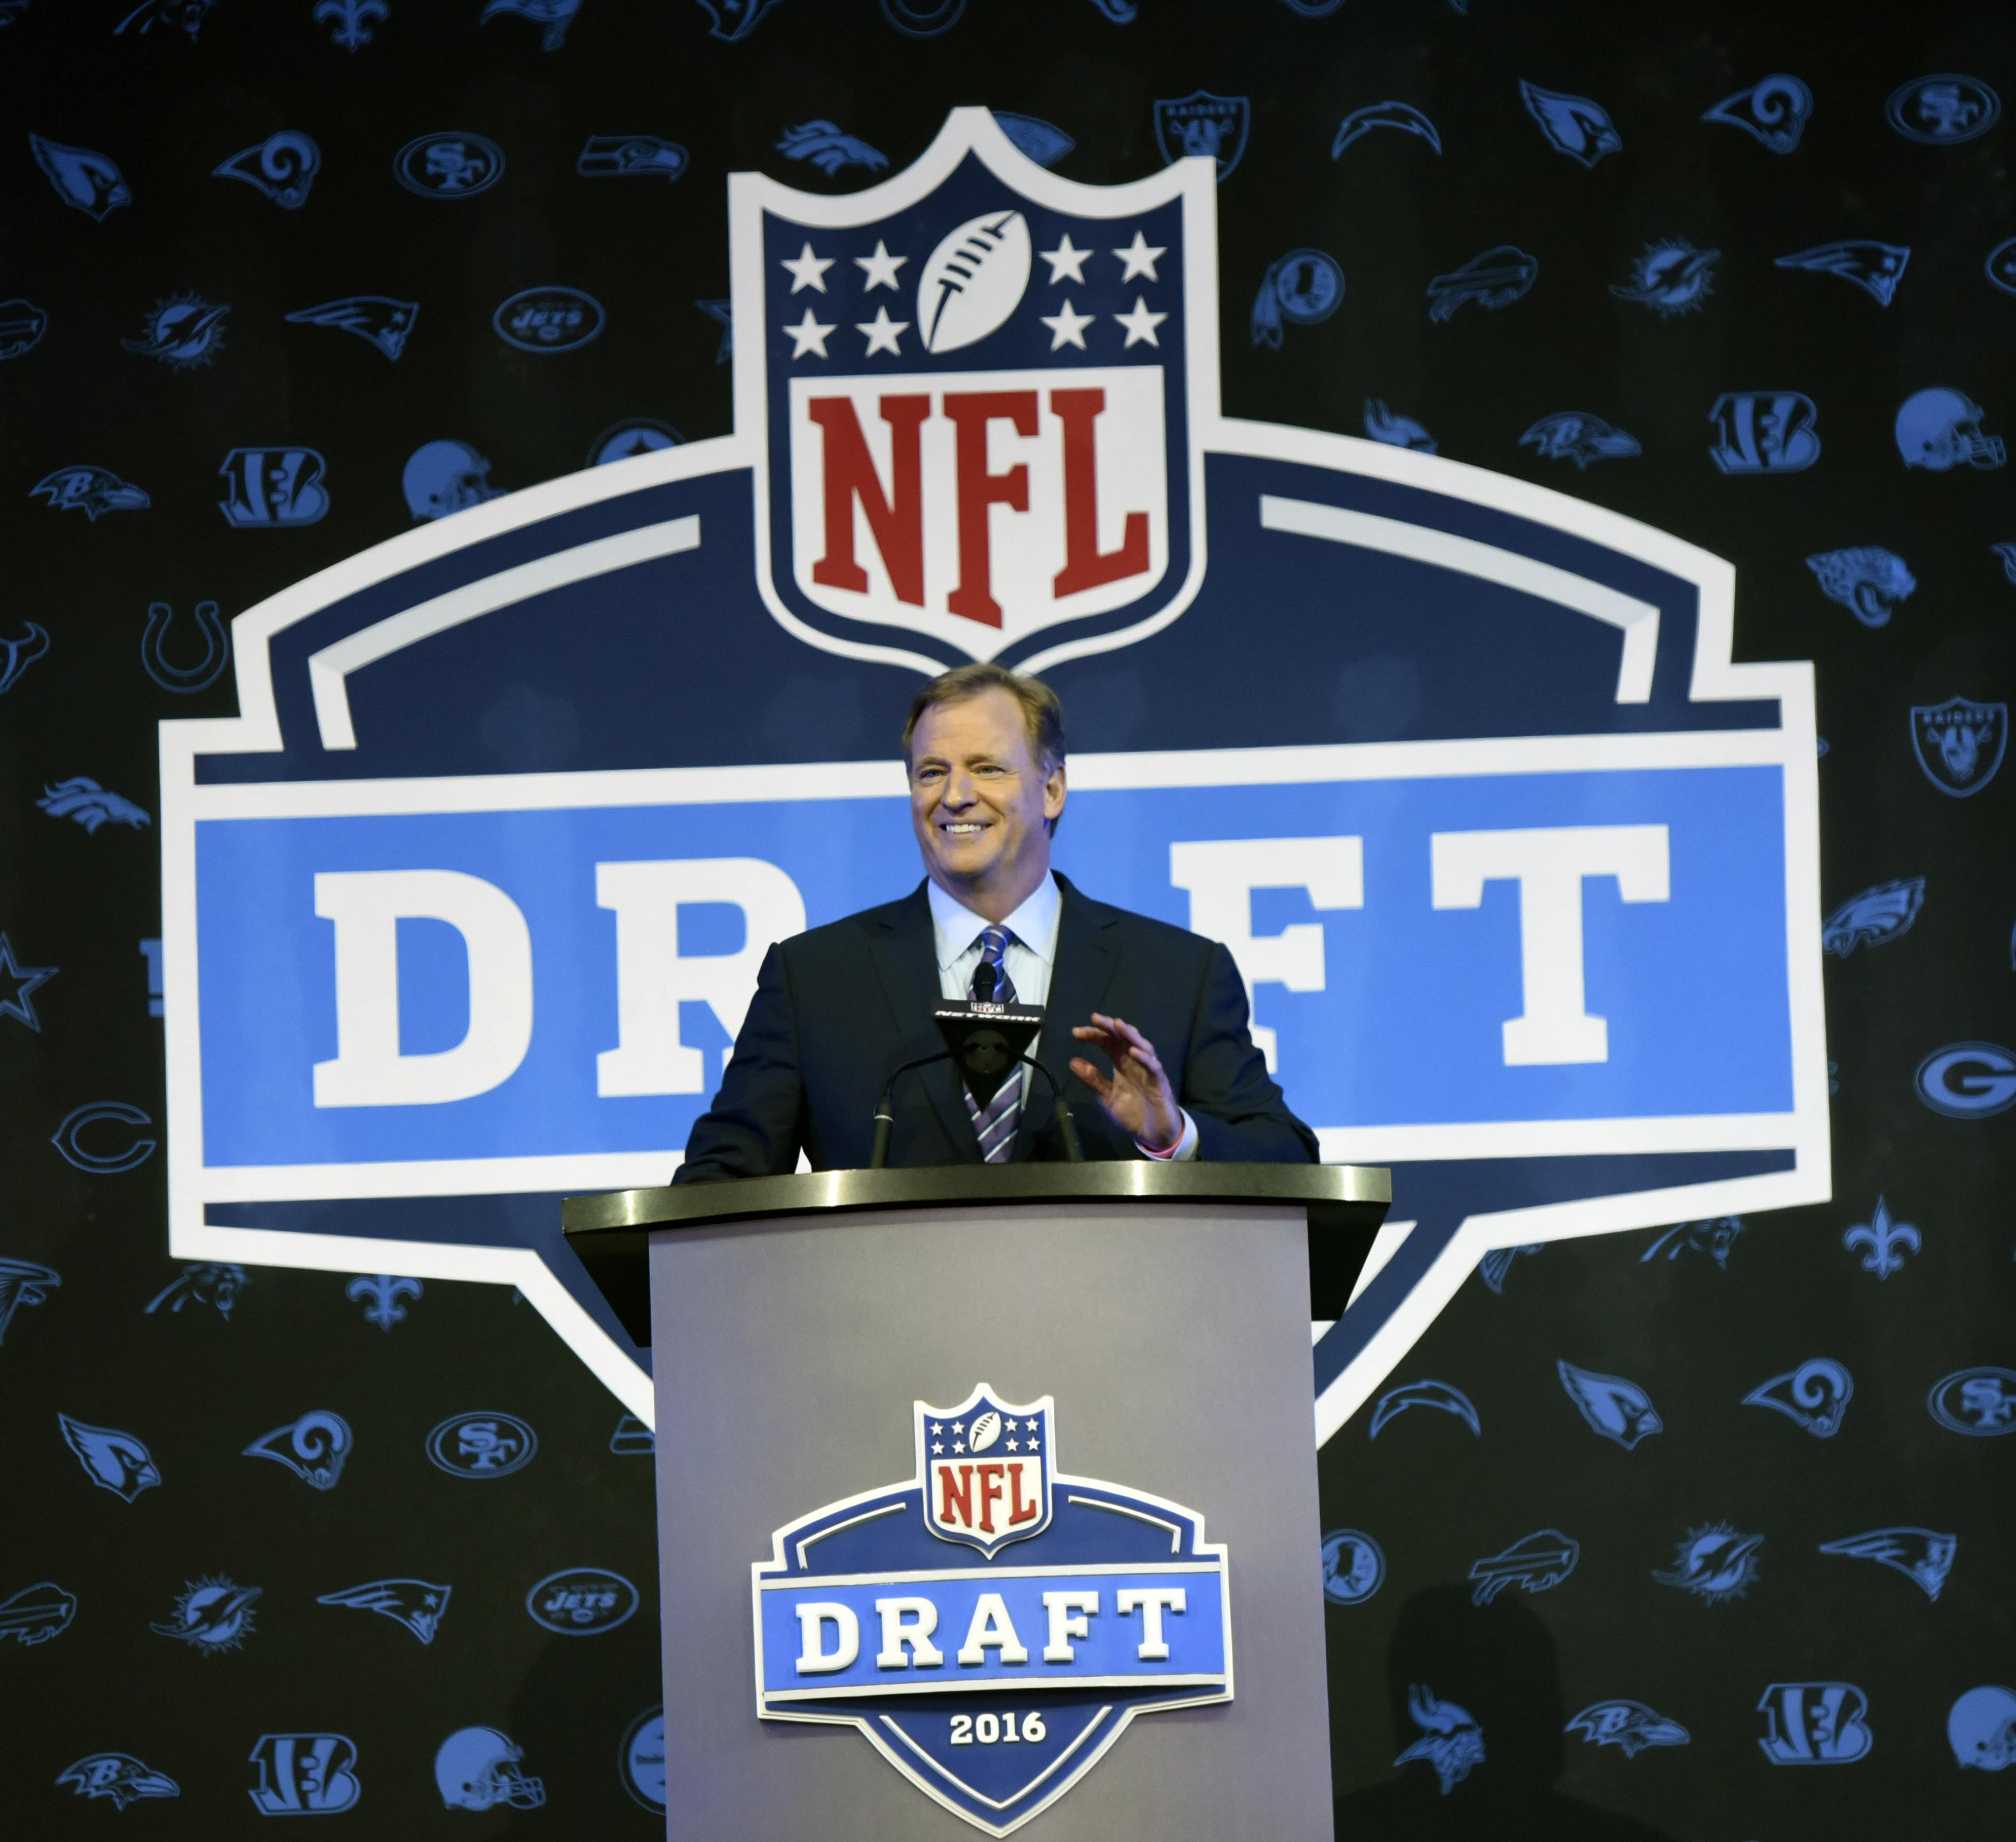 NFL names five finalist cities to host 2019 and 2020 draft weekends